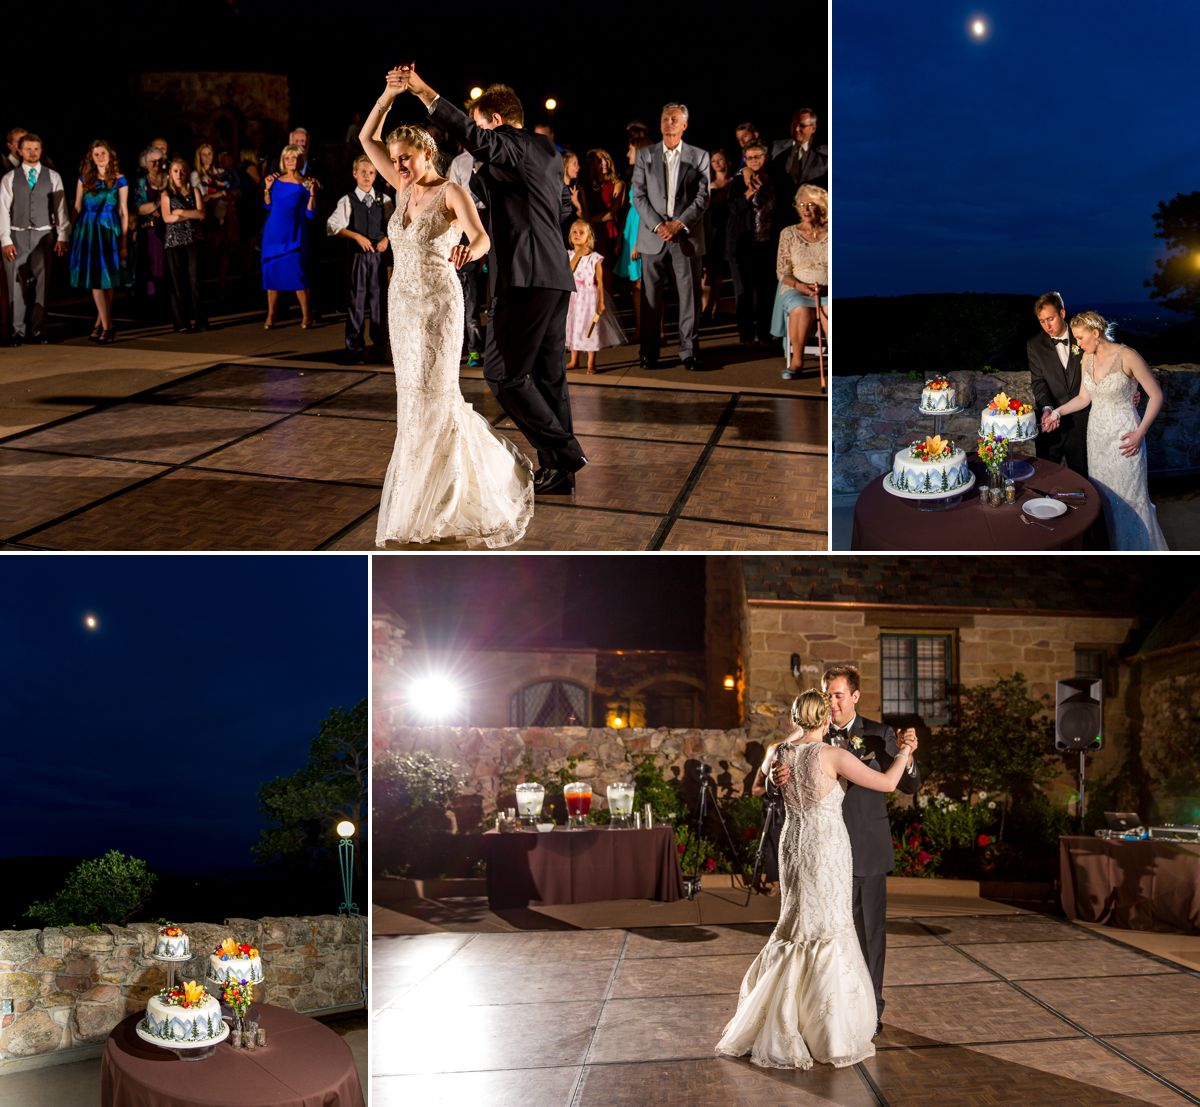 The first time we've ever had a moon over our cake cutting and dancing!